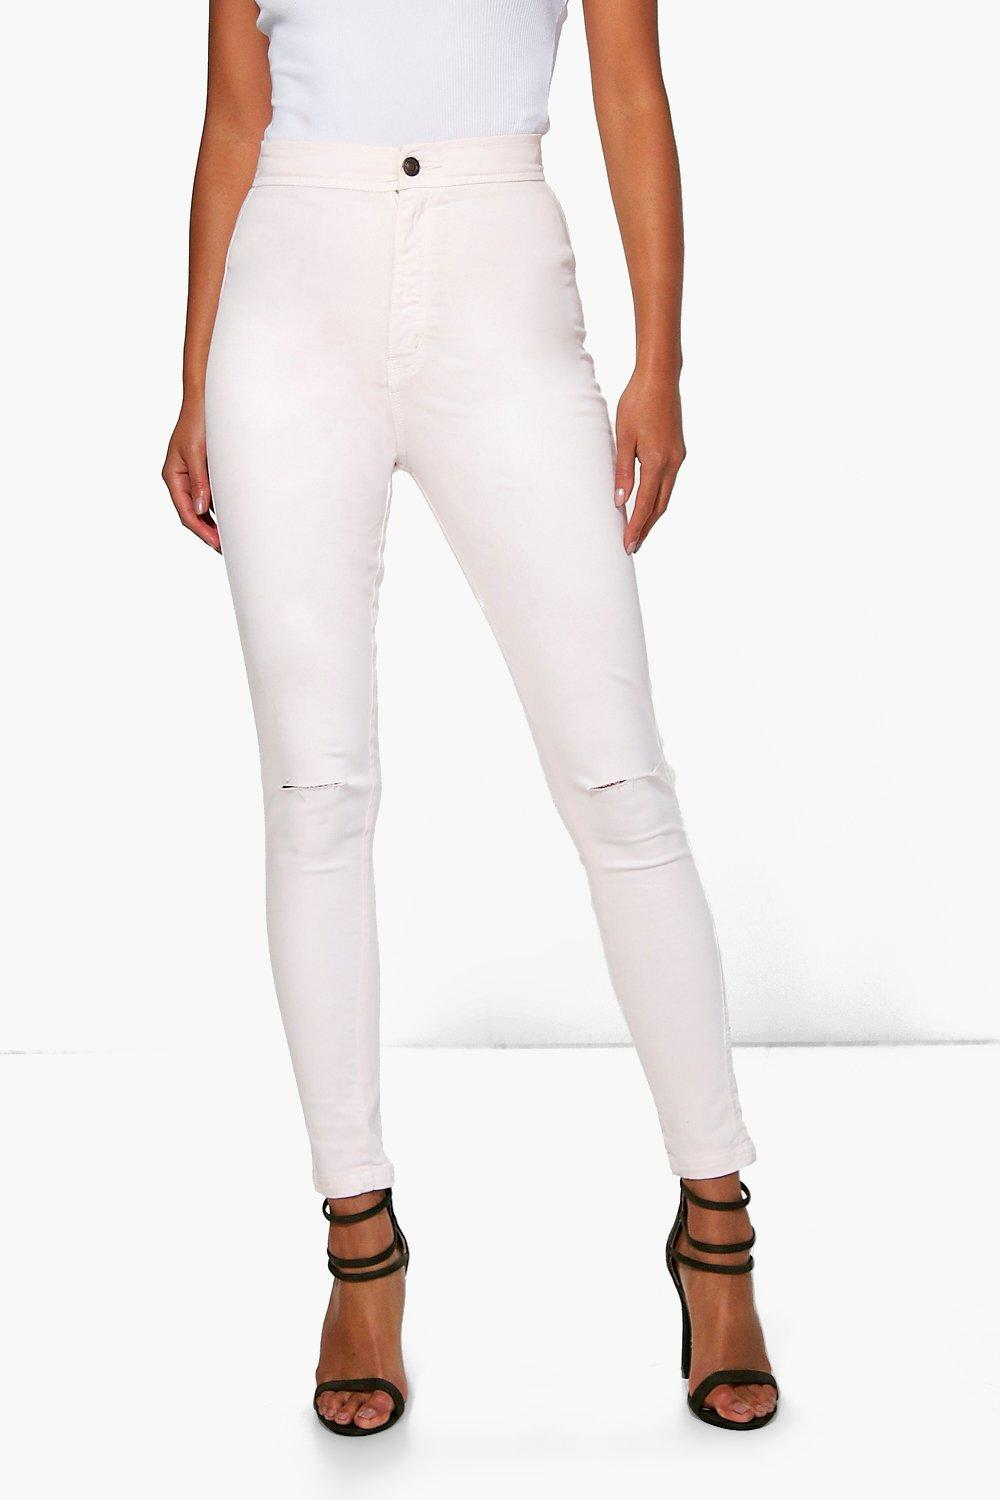 Lara High Rise Knee Rip Tube Jeans